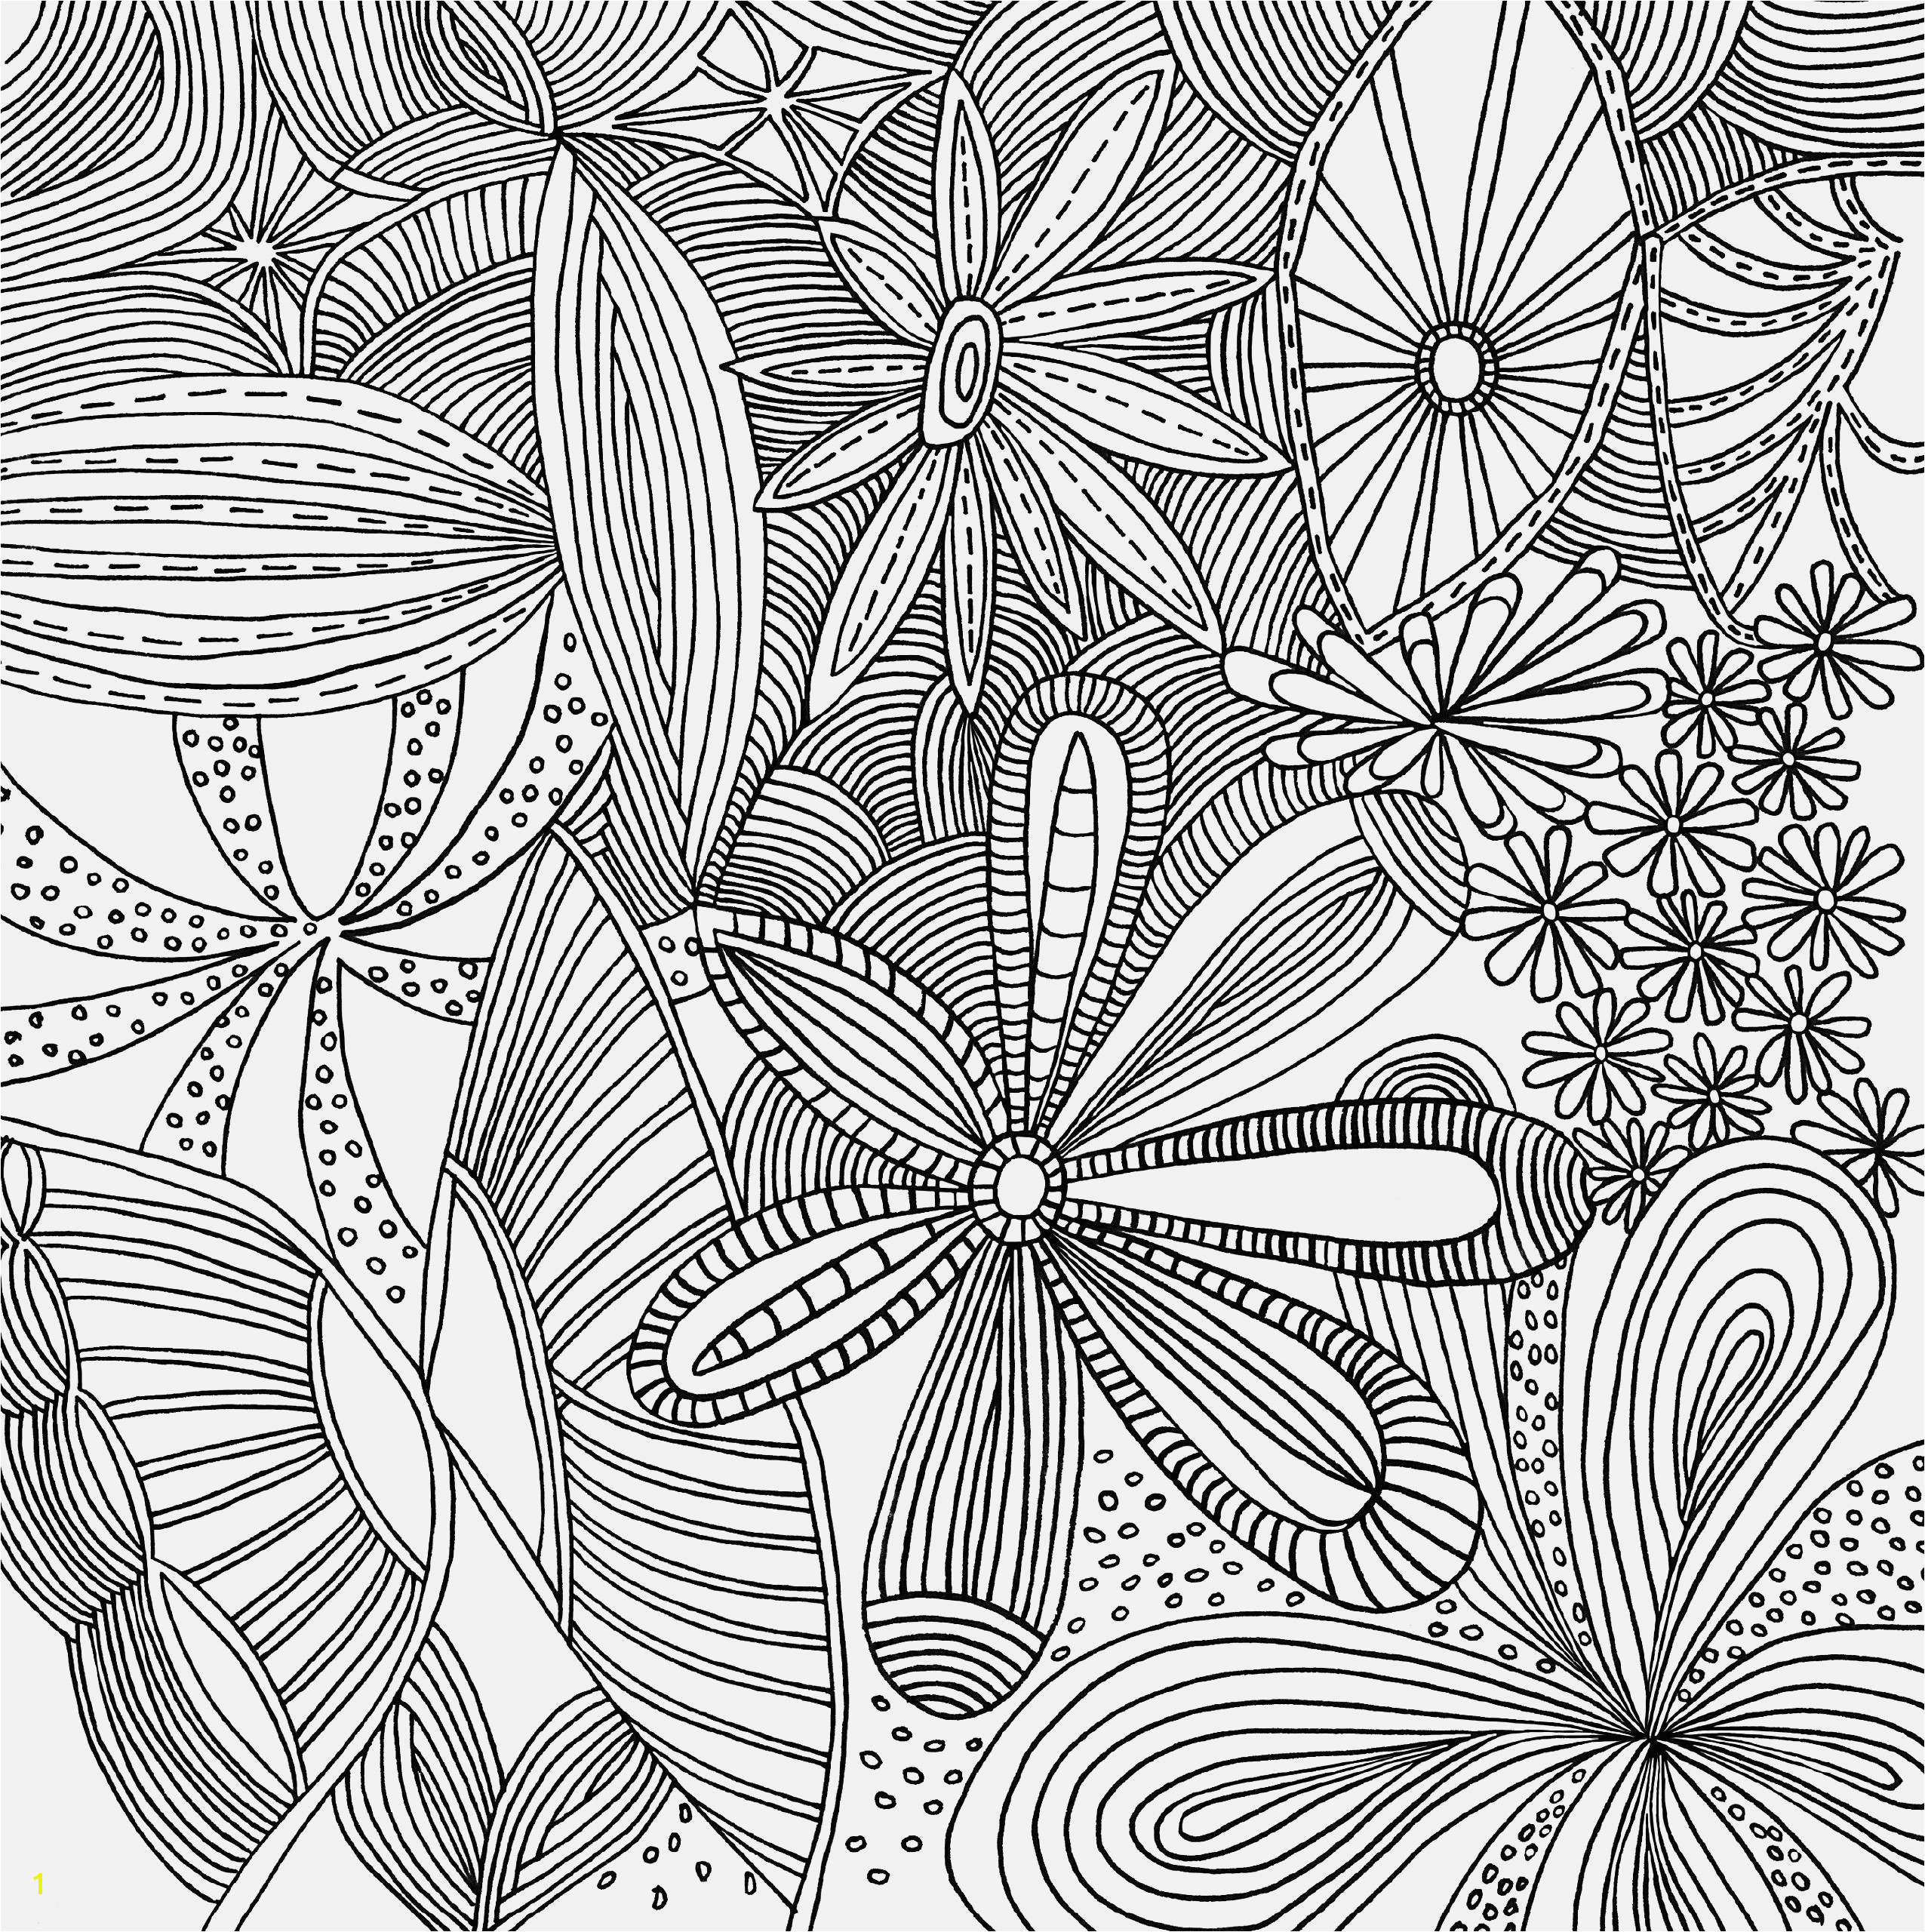 Free Printable Coloring Pages for Adults Advanced Printable Free Printable Coloring Pages for Adults Advanced Fresh